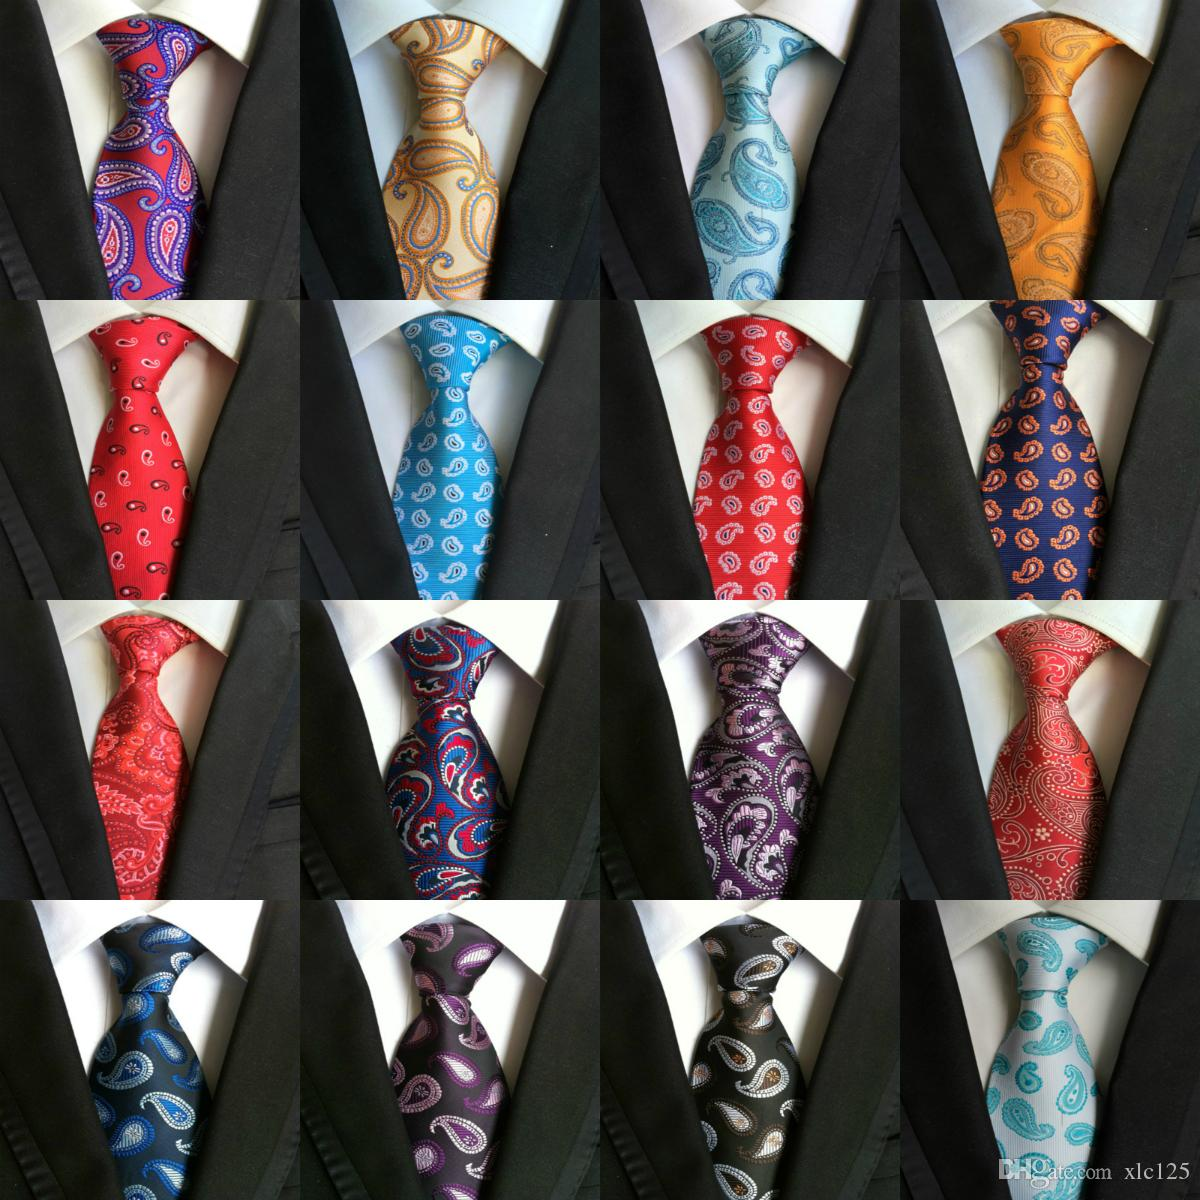 220c2bb3788d High Quality 8cm Men Ties Fashion Classic Neckties Handmade Wedding Ties  Silk Paisley Neck Tie Stripes Plaid Dots Business Ties 185 Styles Tie Bow  Tie From ...